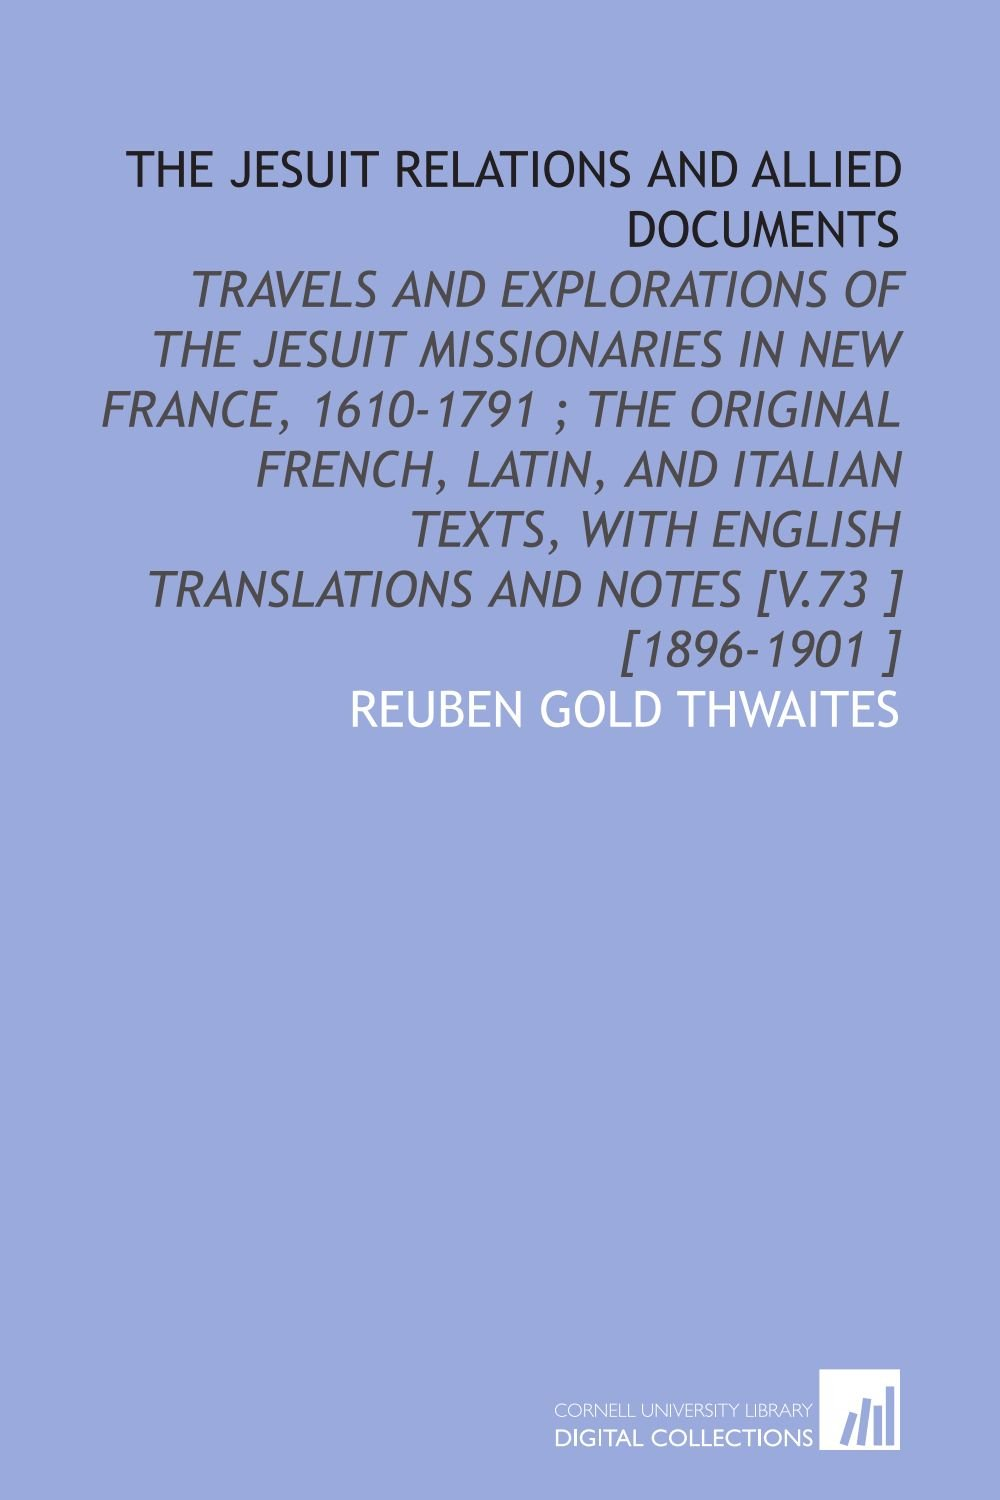 Download The Jesuit Relations and Allied Documents: Travels and Explorations of the Jesuit Missionaries in New France, 1610-1791 ; the Original French, Latin, ... Translations and Notes [V.73 ] [1896-1901 ] pdf epub